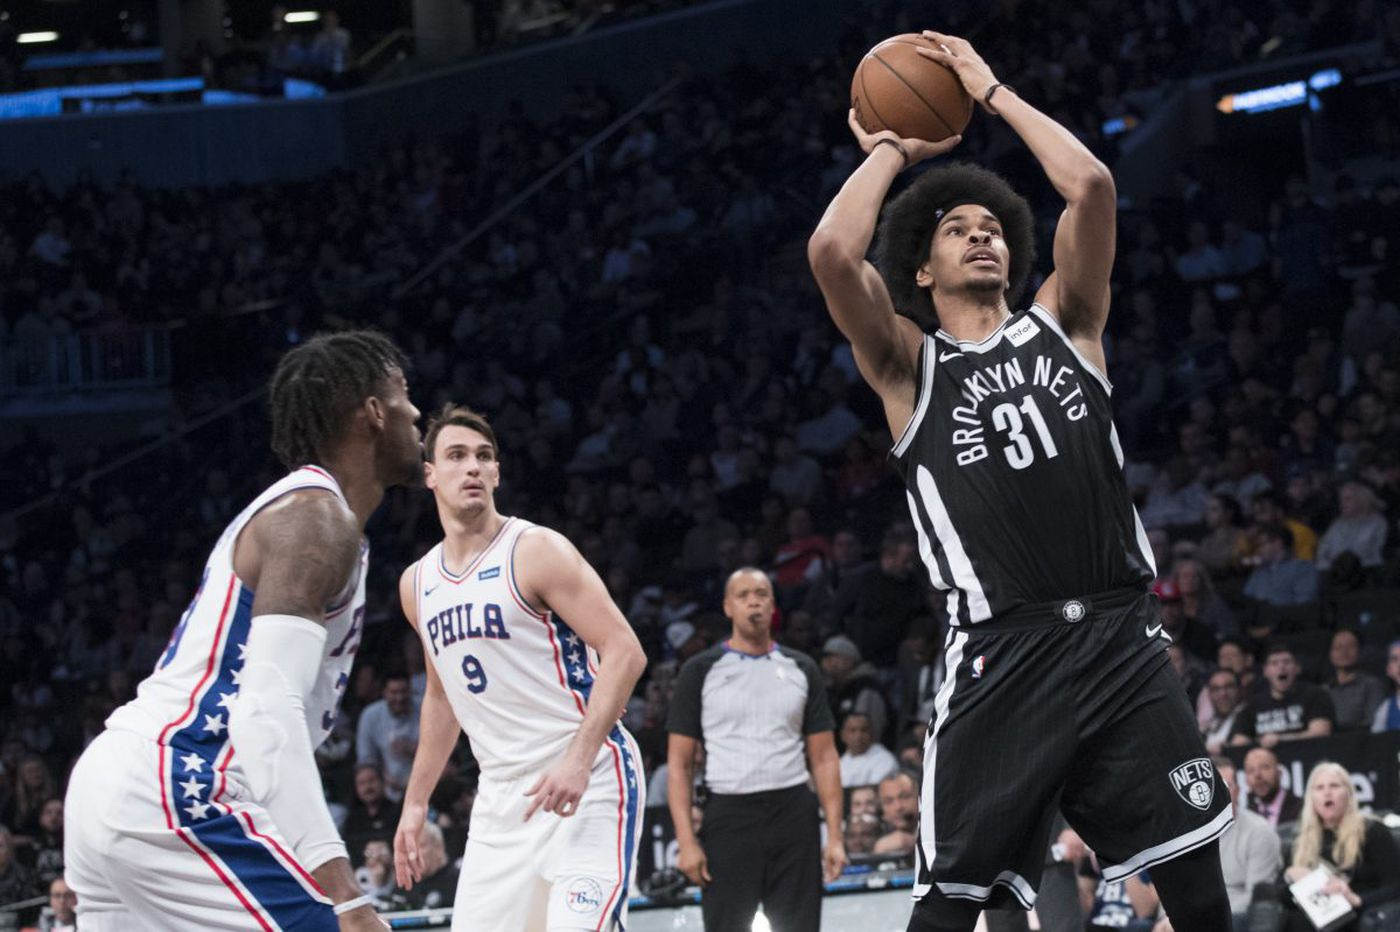 Sixers-Nets observations: Robert Covington, Jerryd Bayless and Sixers' lack of overall improvement